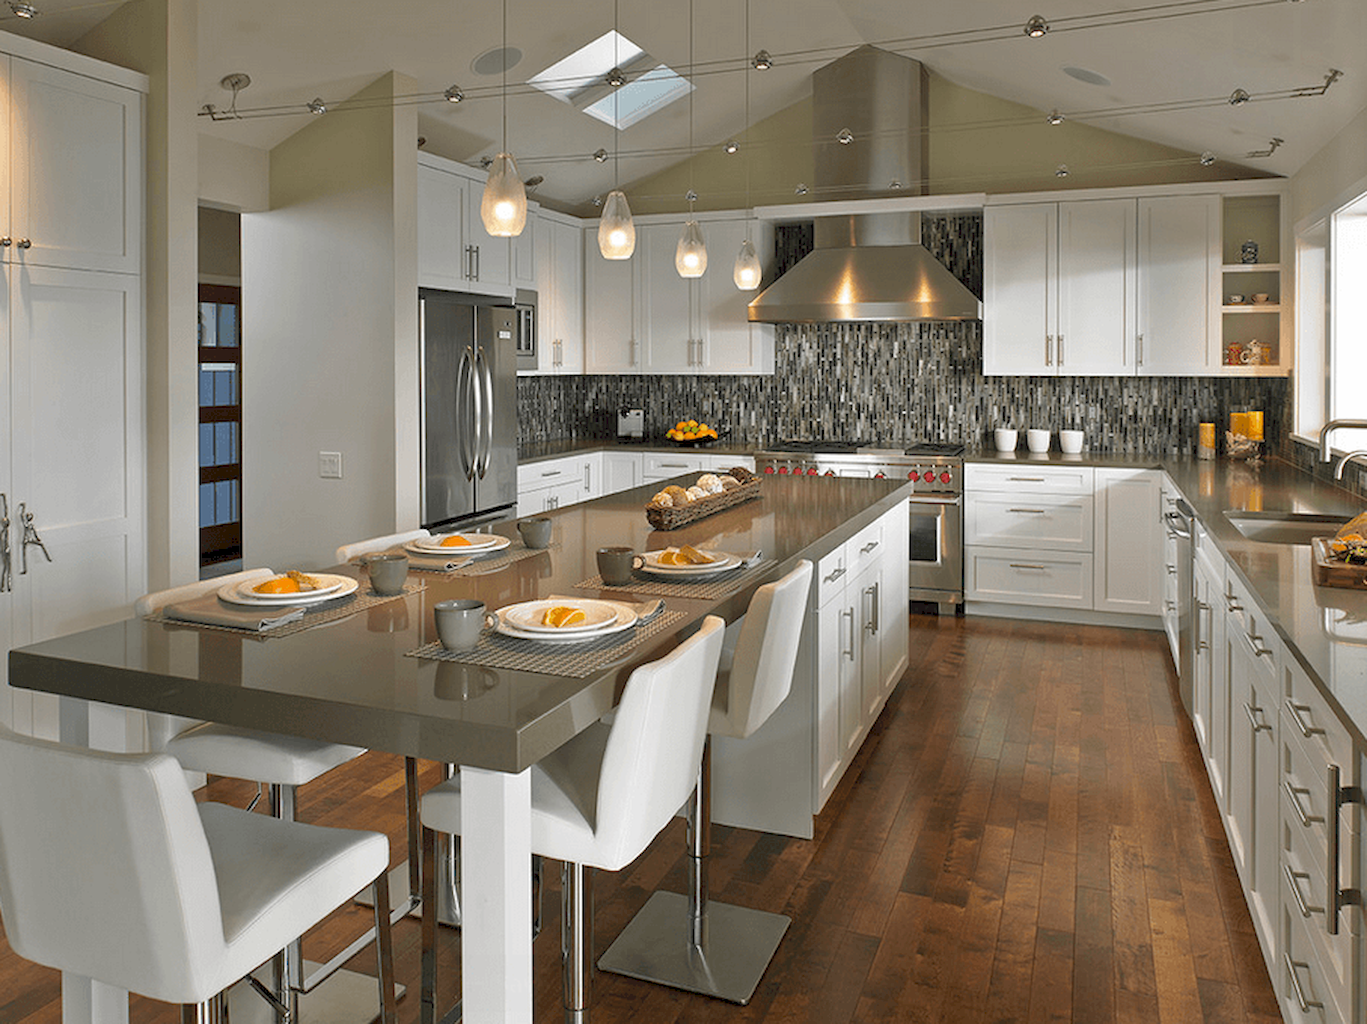 https://elonahome.com/wp-content/uploads/2018/09/Dual-purpose-kitchen-island-that-will-really-safe-your-space-and-extra-budget-as-well-16.png